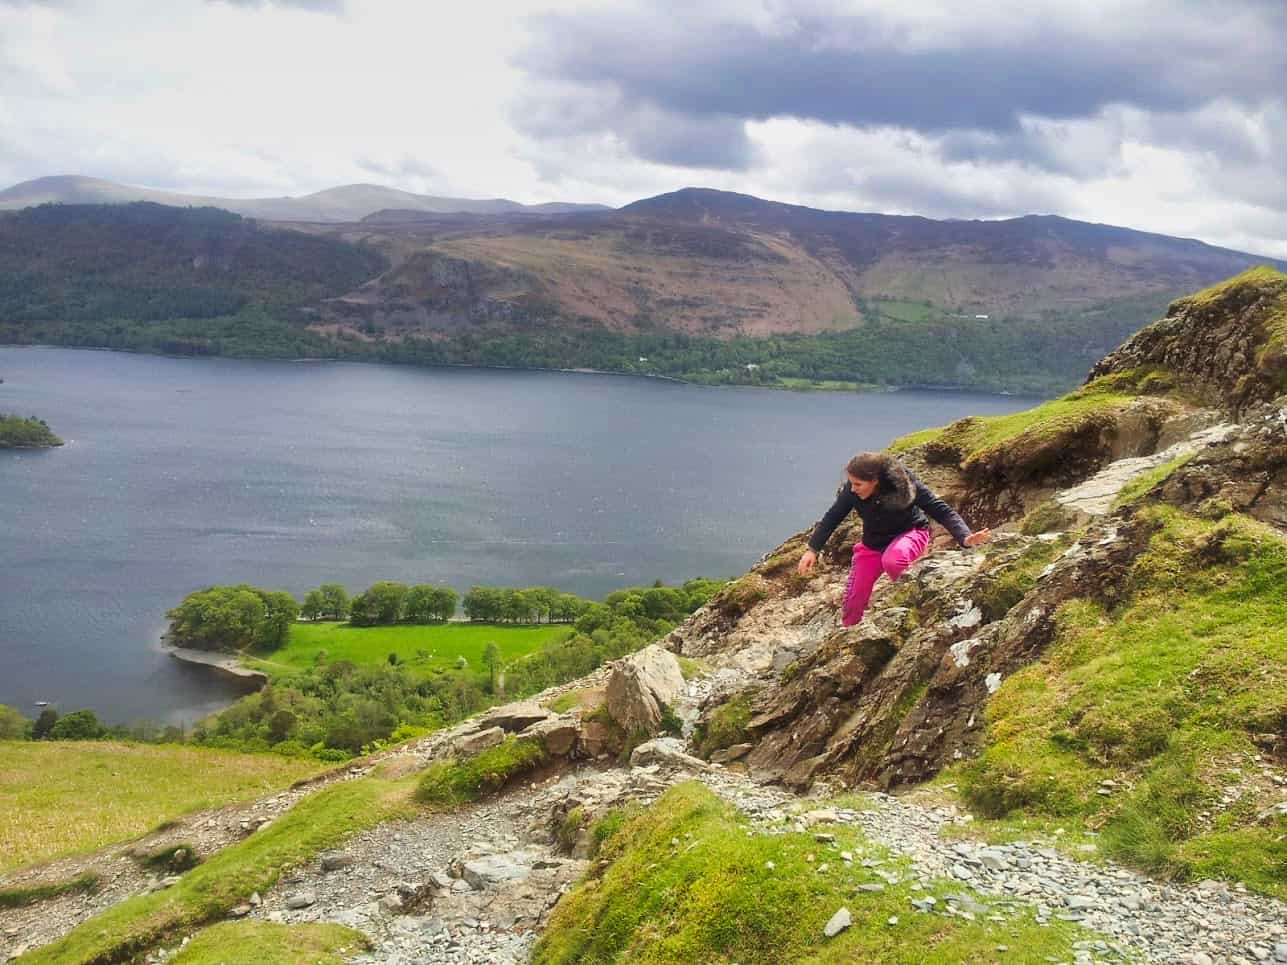 Kalyn climbing down mountain in Lake District